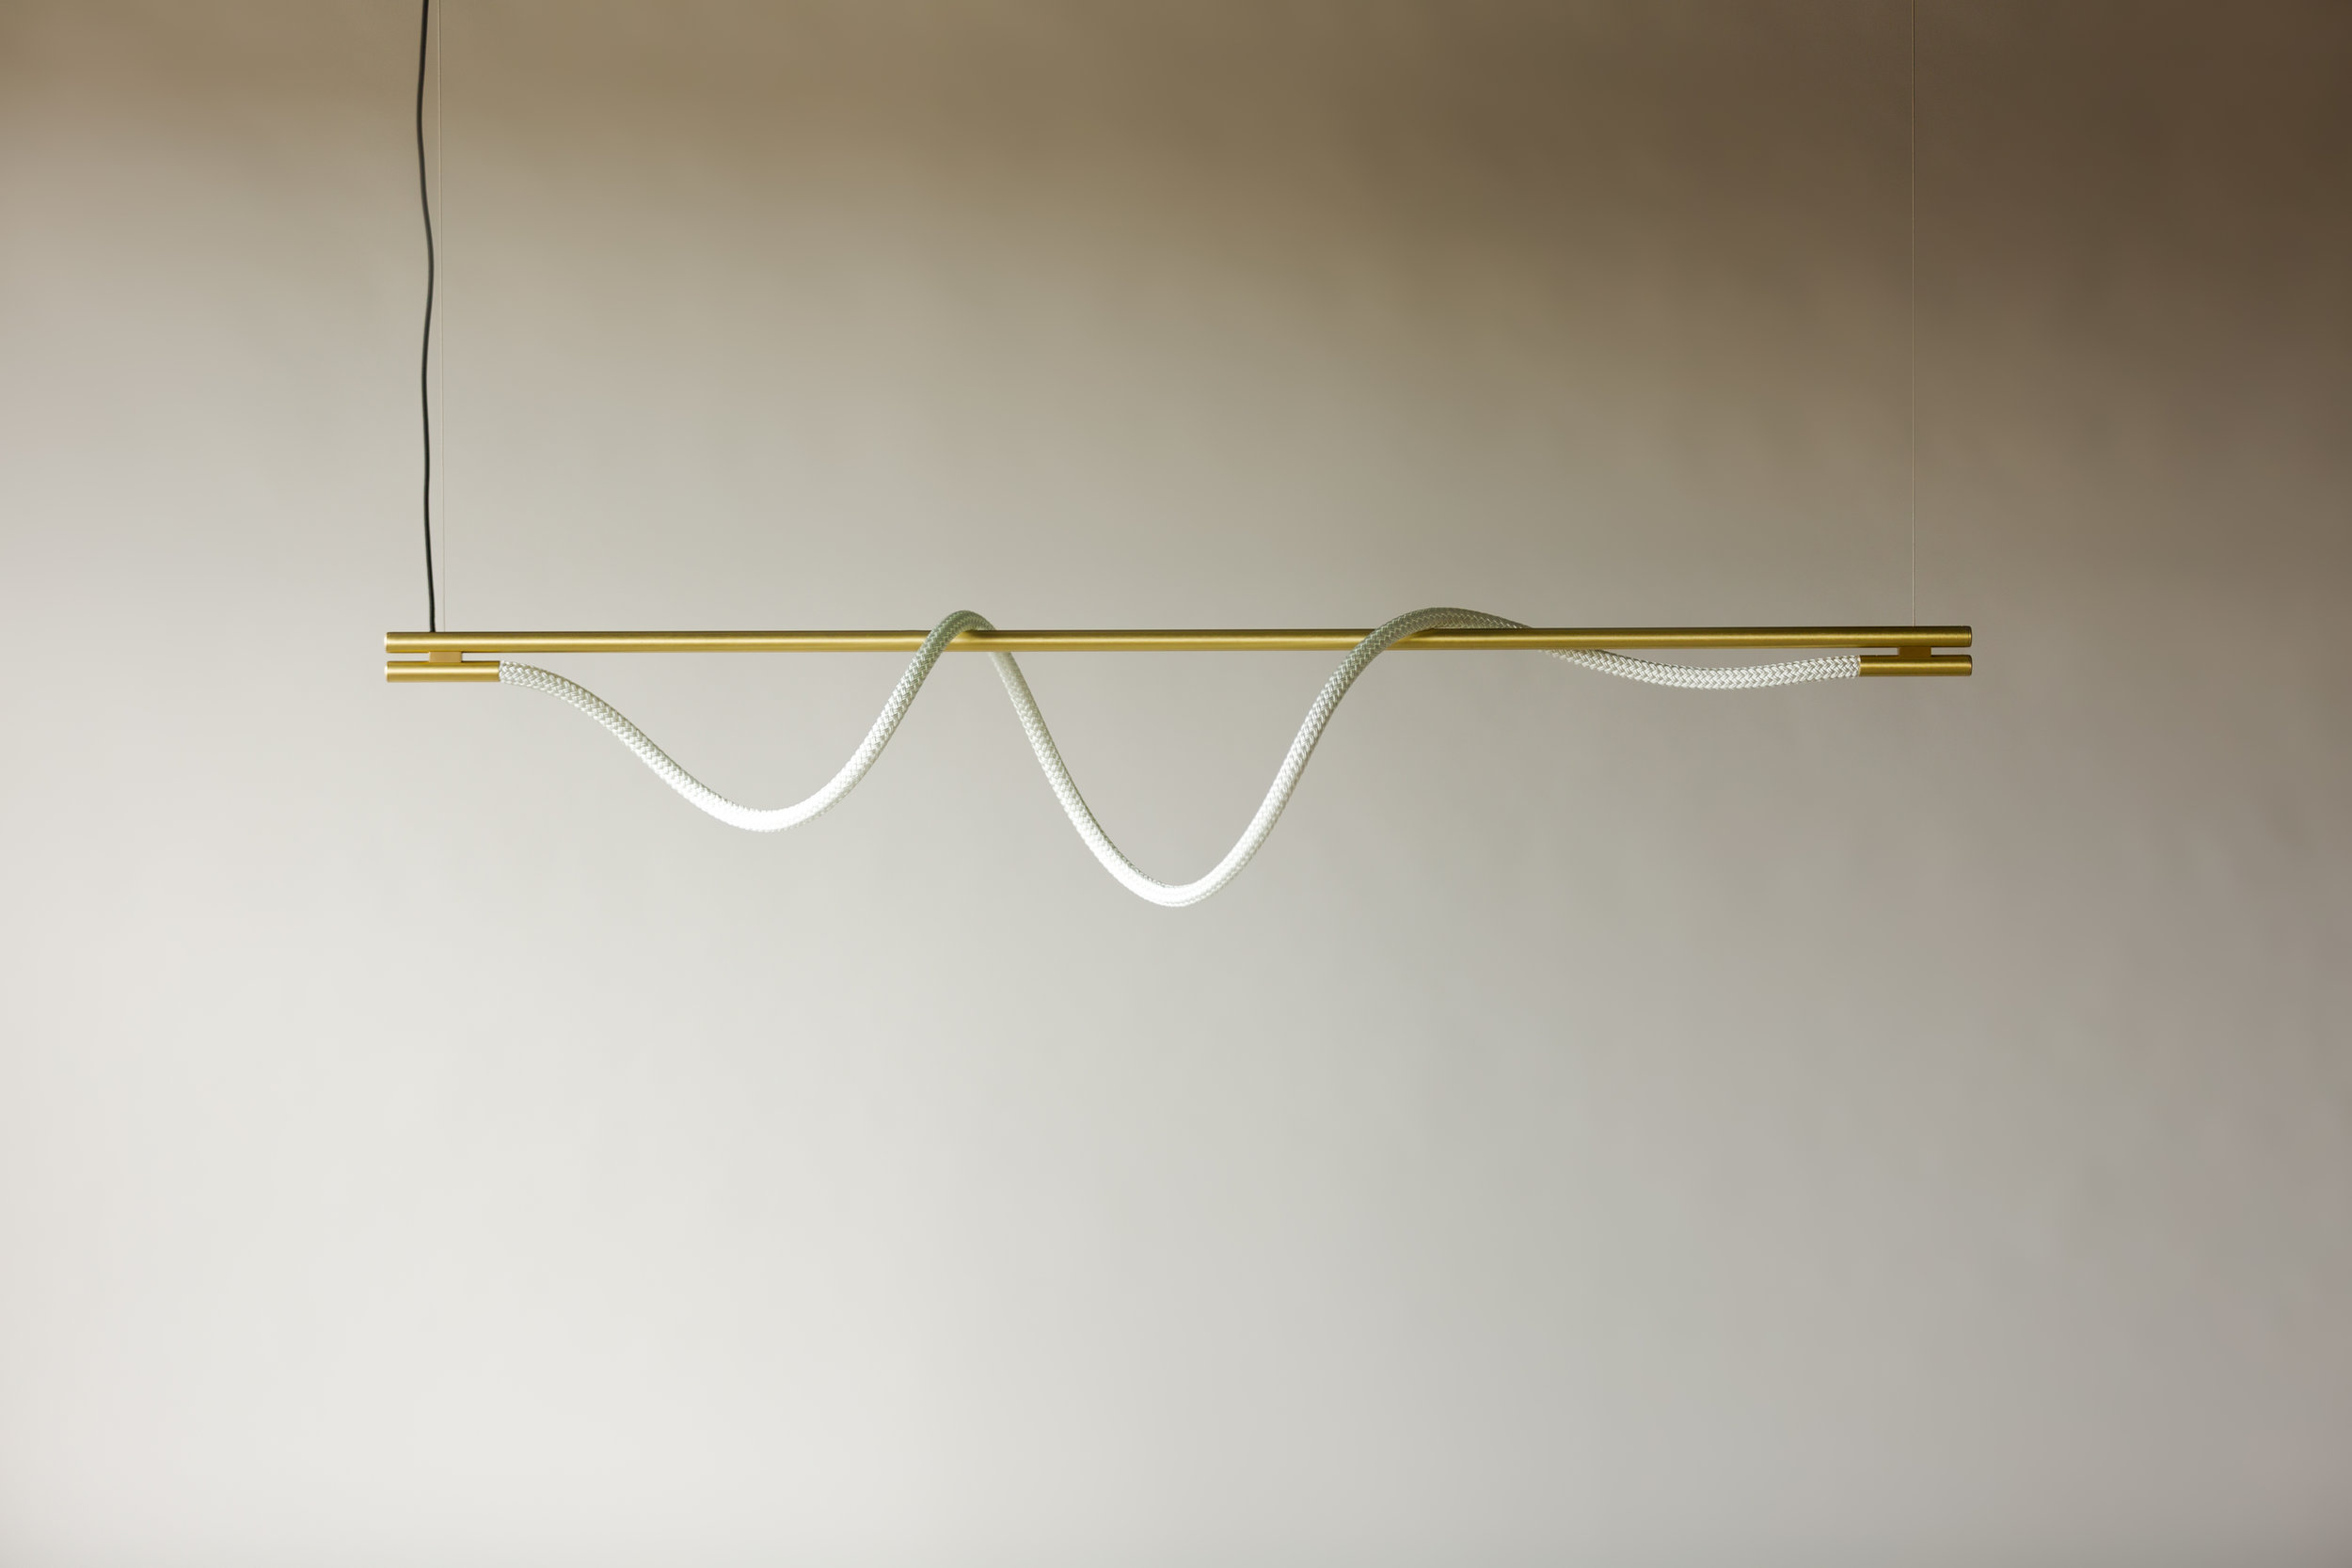 6' Surrey Suspension IV - Cable  (pictured in Satin Brass / turned off)